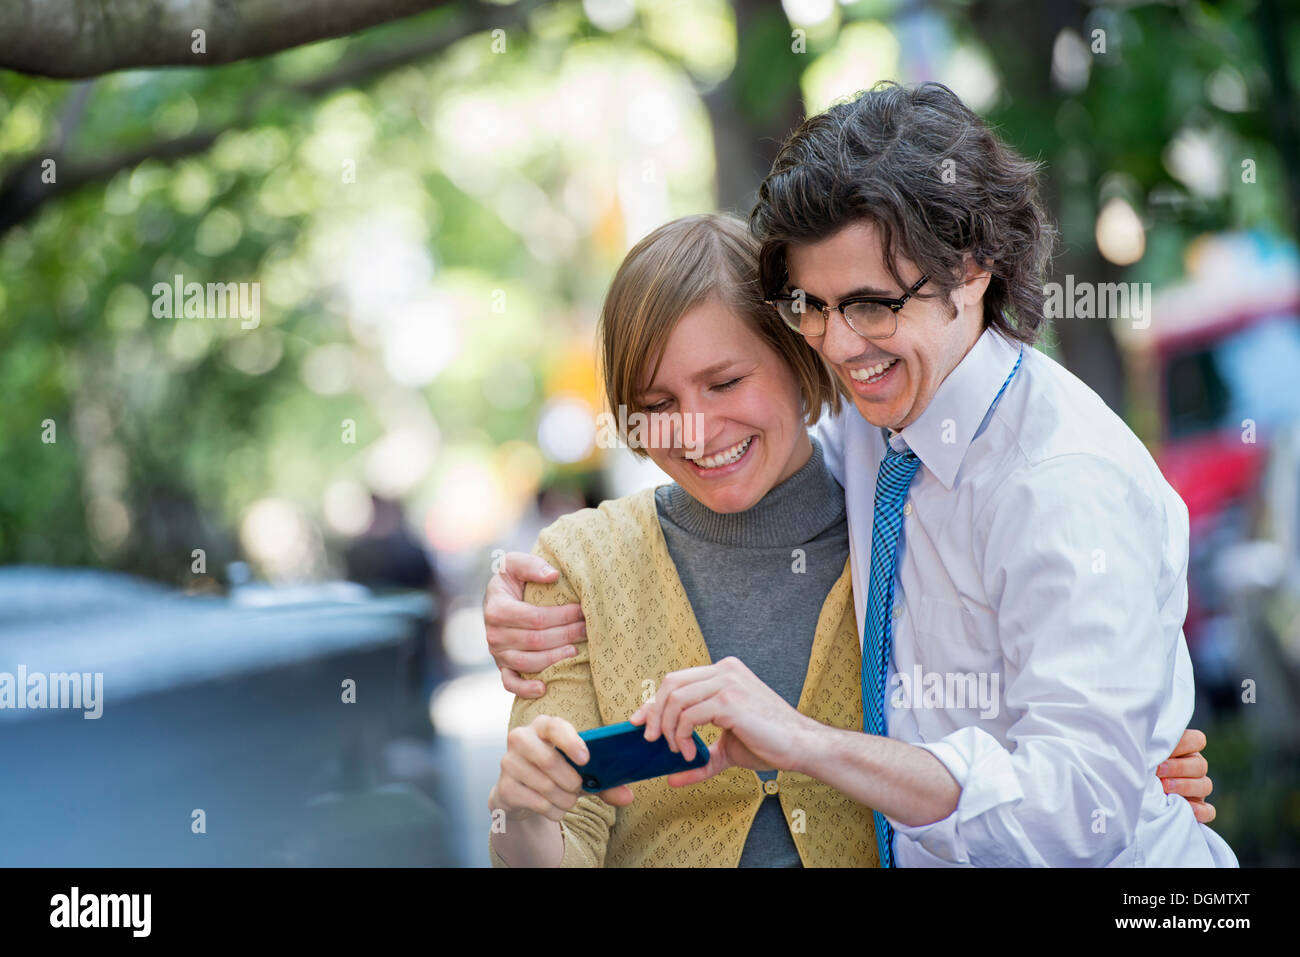 City. Two people, a man and woman outdoors, looking at a smart phone together. - Stock Image